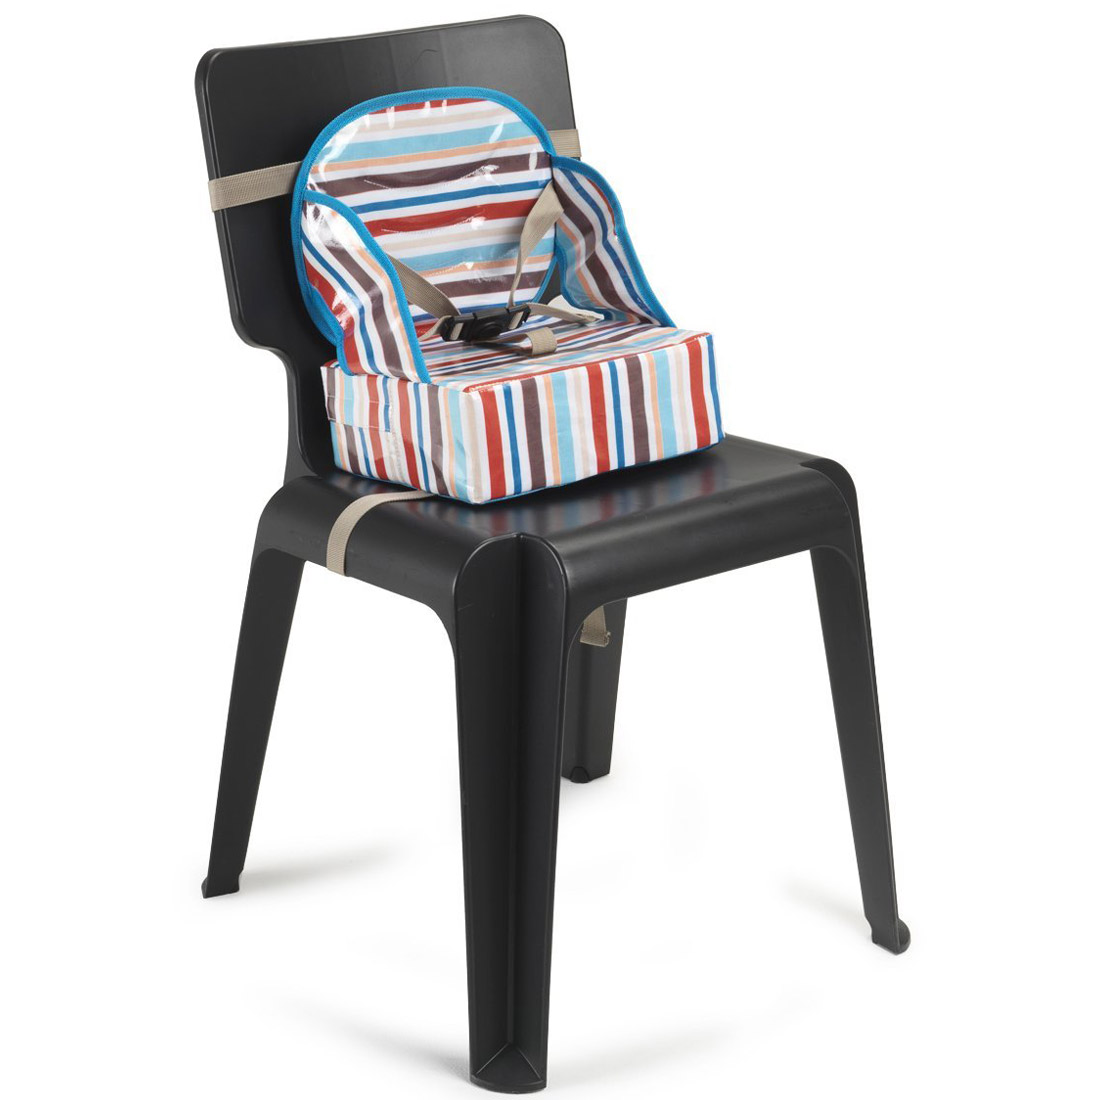 aubert france produits rehausseurs de chaises pour enfants. Black Bedroom Furniture Sets. Home Design Ideas